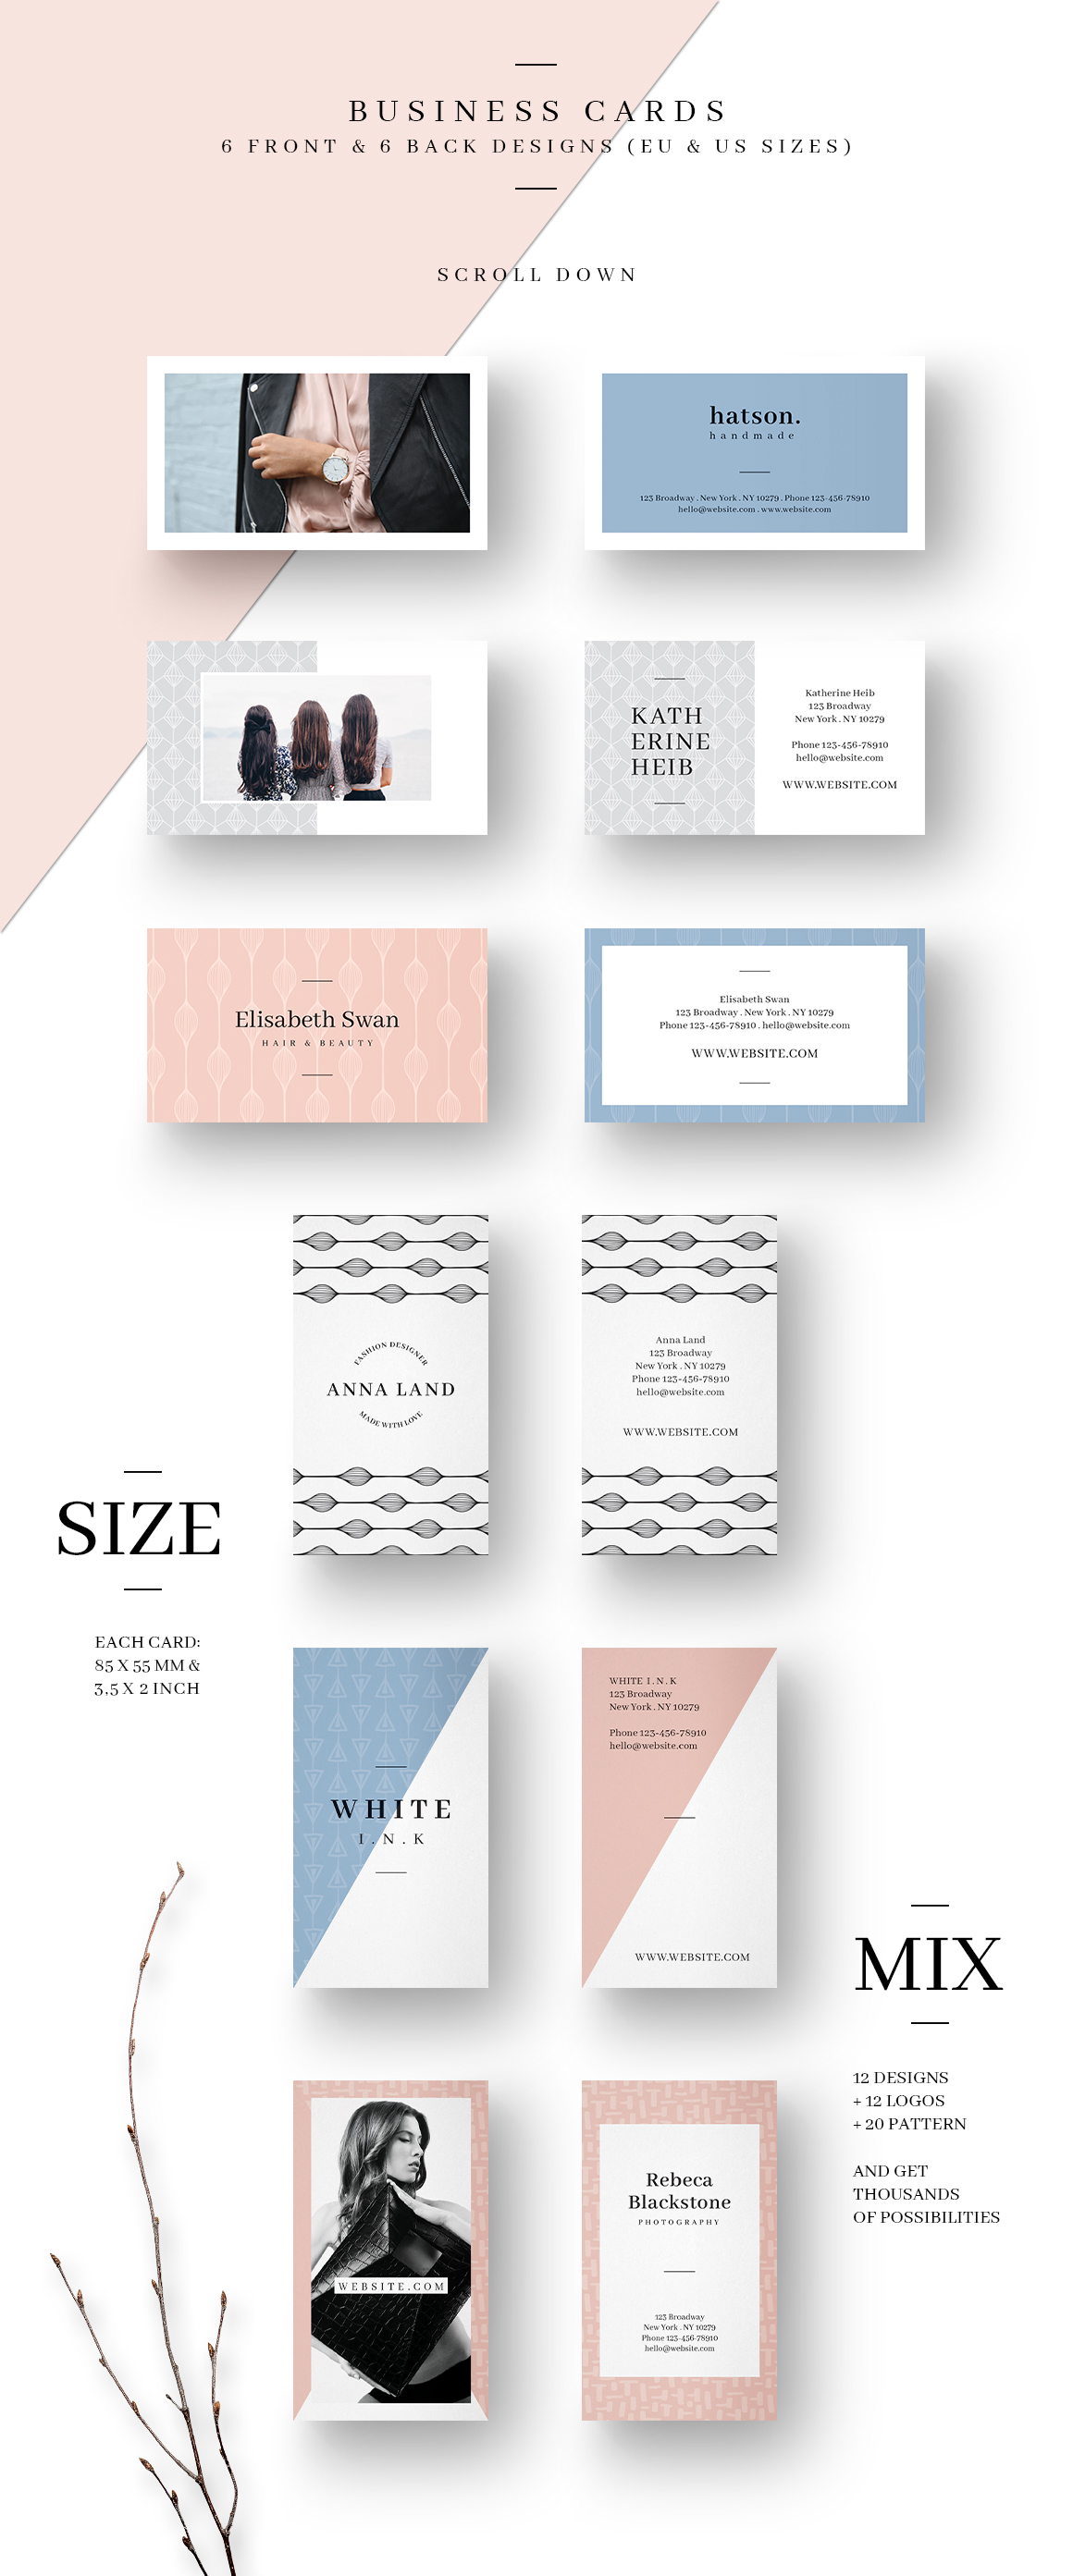 MALINA Business Cards + Logos + Pattern example image 5